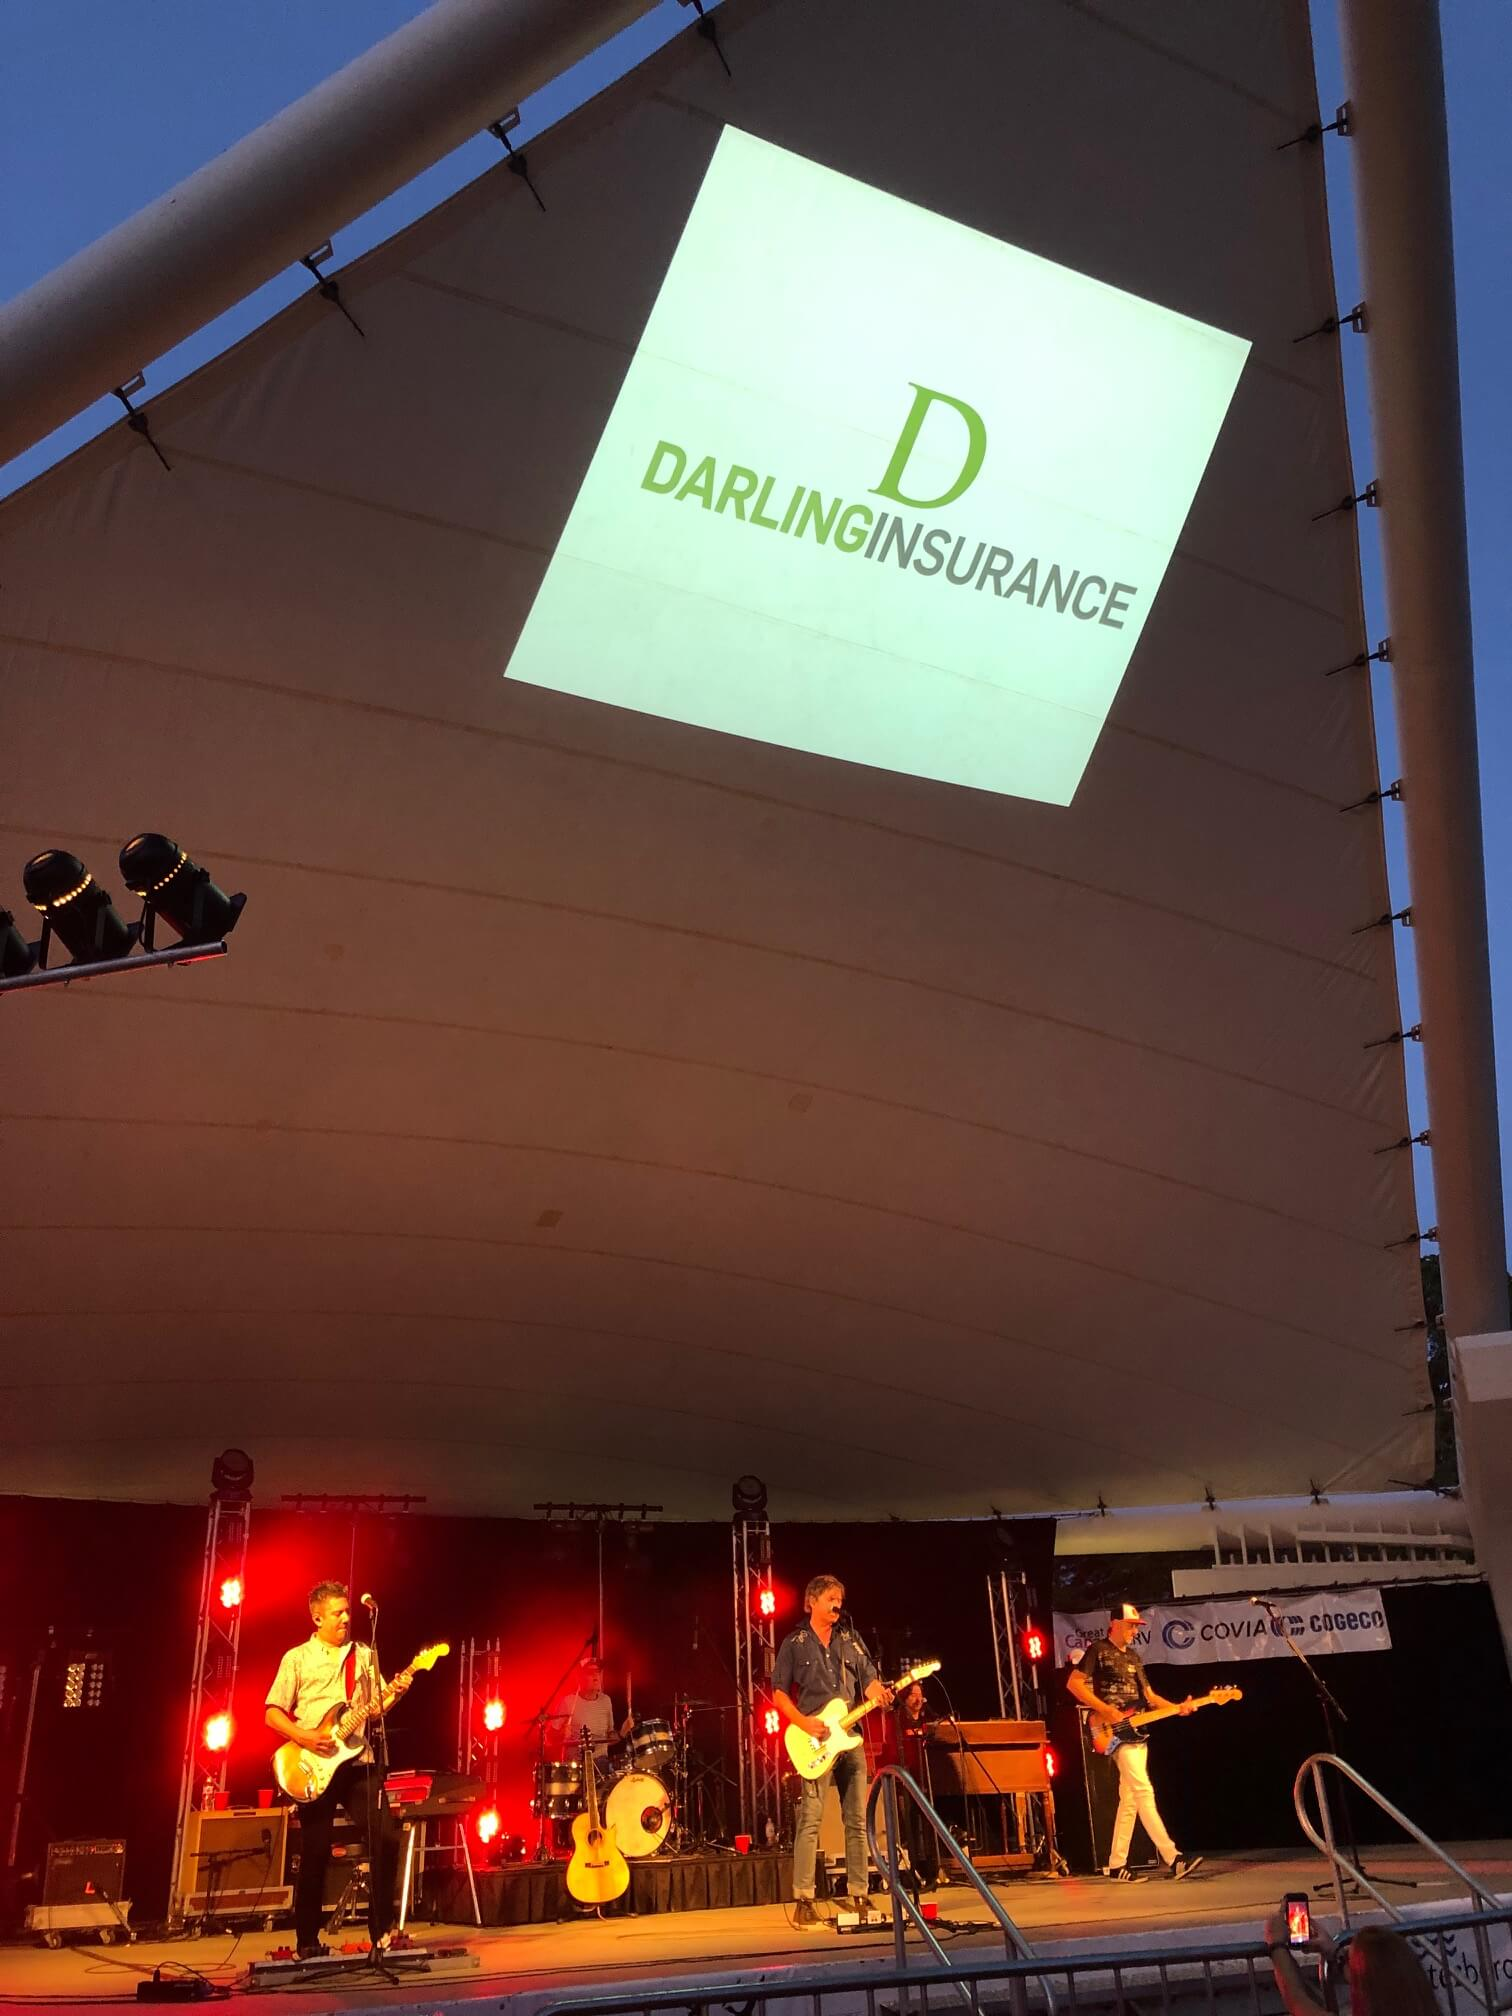 Photo of the musicfest stage with Darling Insurance's logo projected on the roof